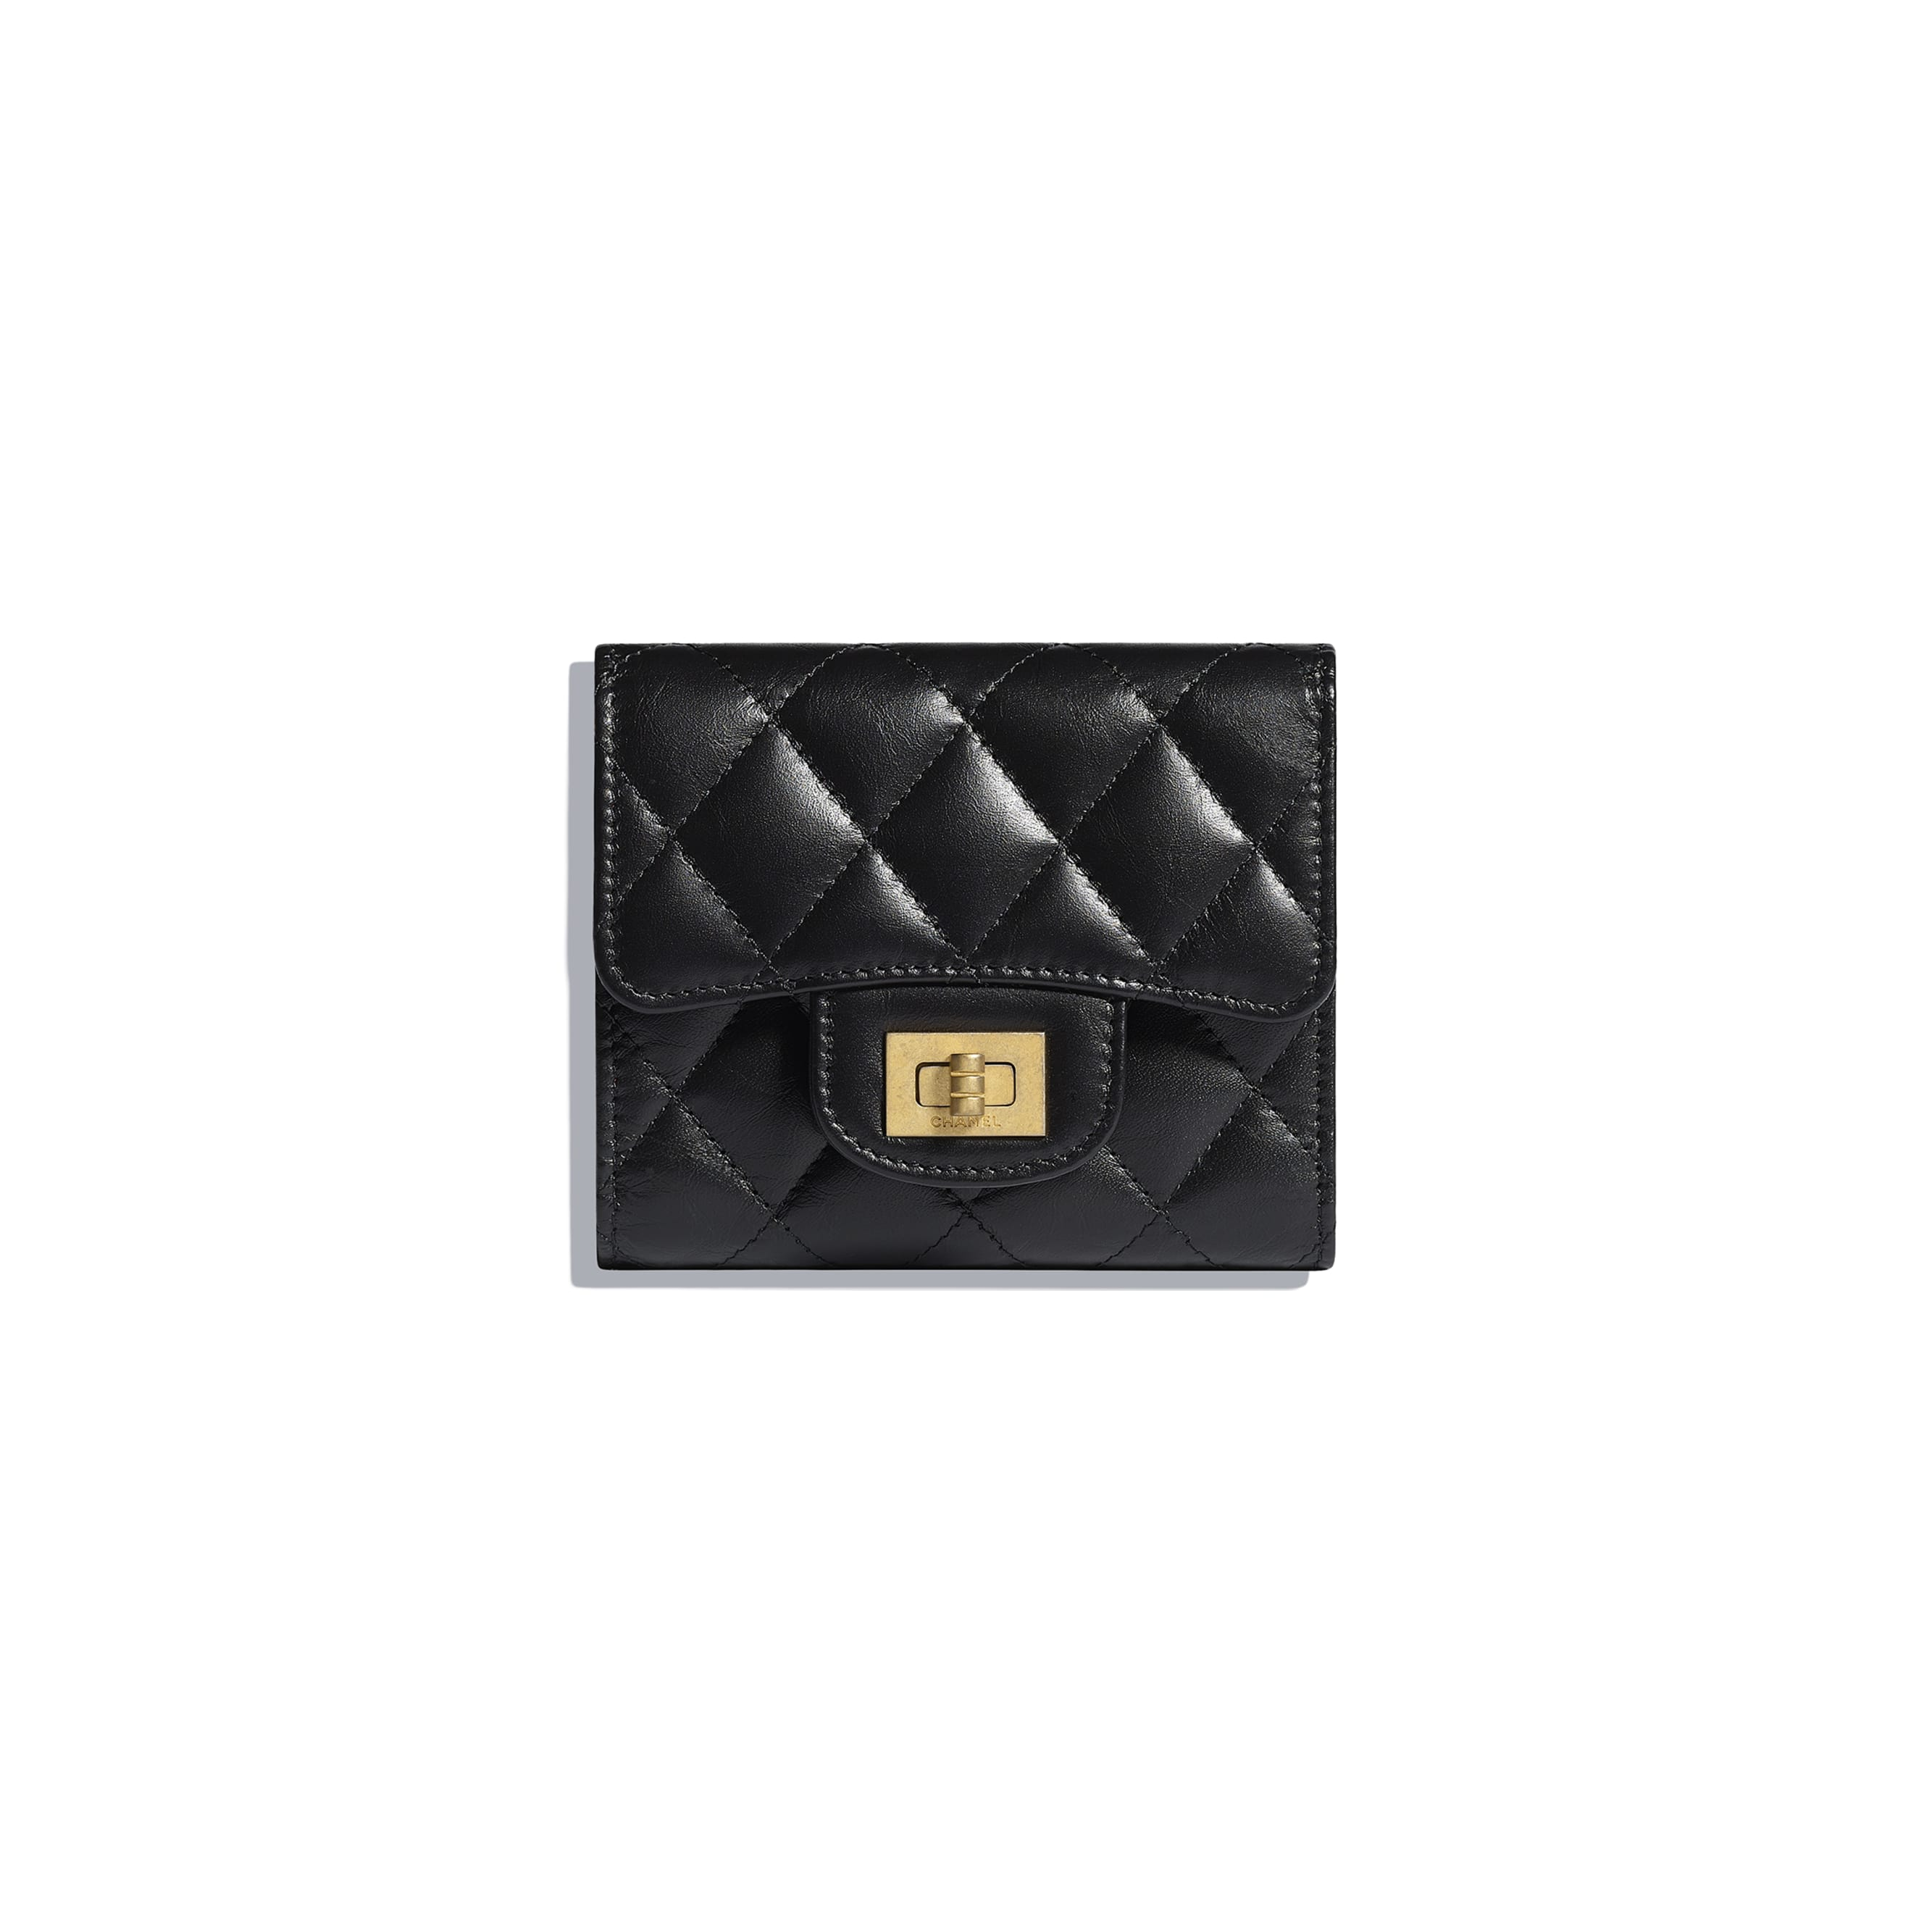 2.55 Small Flap Wallet - Black - Aged Calfskin & Gold-Tone Metal - Default view - see standard sized version